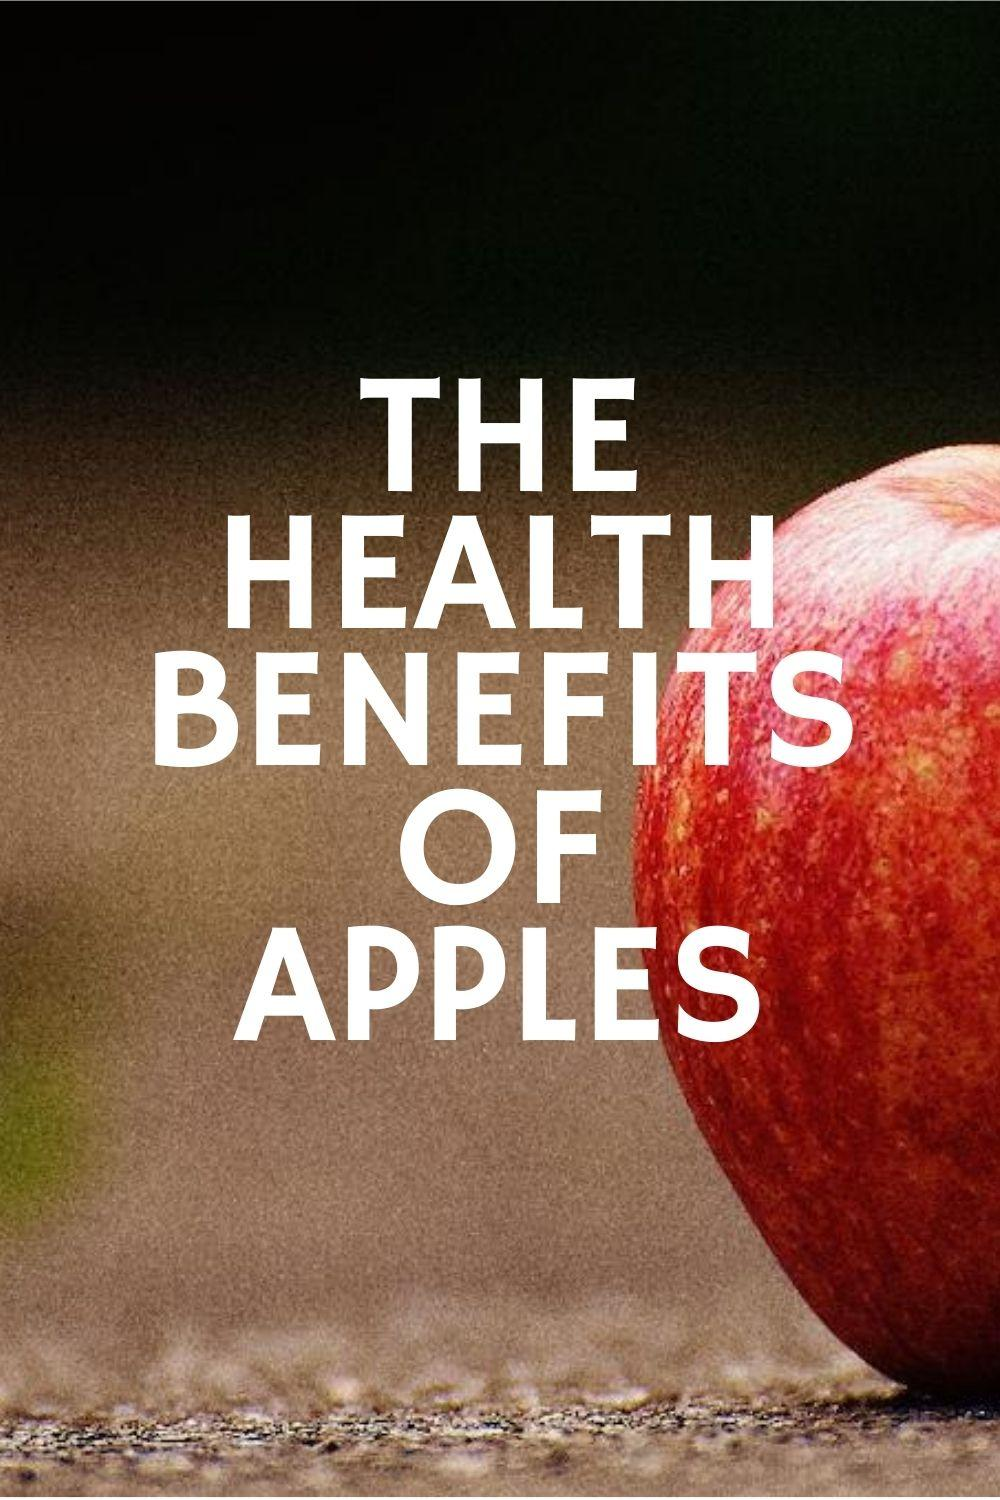 apple benefits graphic